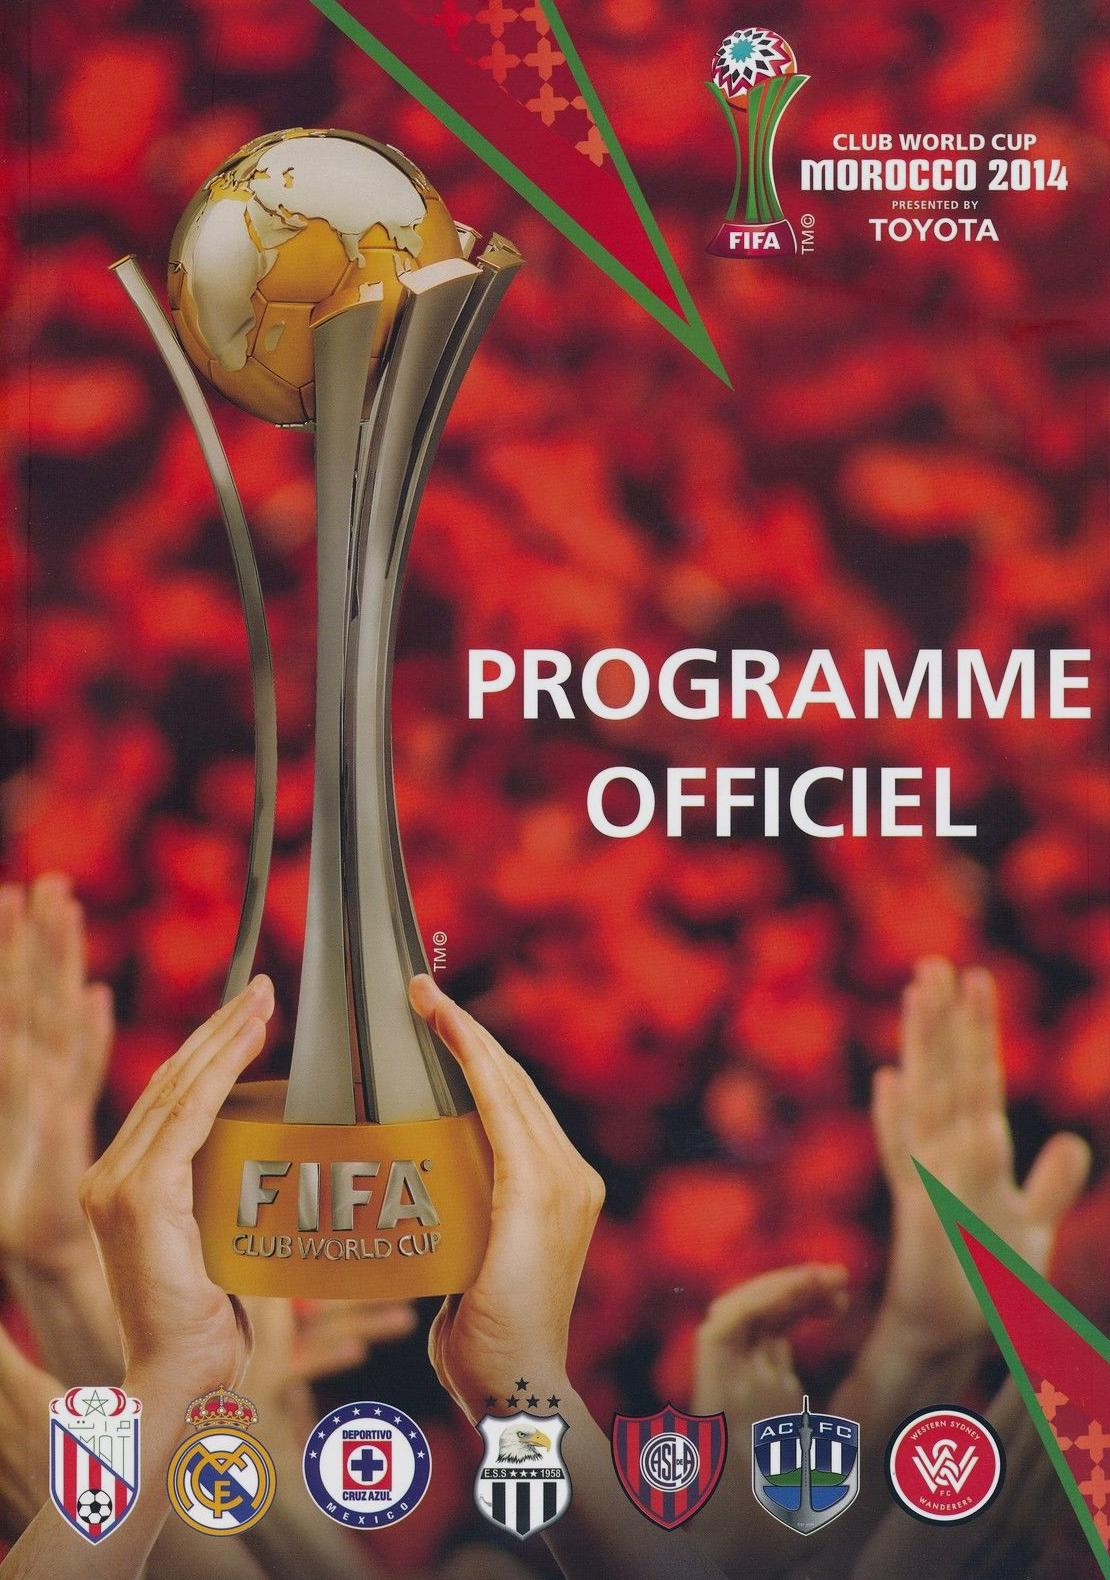 2014 FIFA CLUB WORLD CUP TOURNAMENT (MOROCCO) PROGRAMME FRENCH